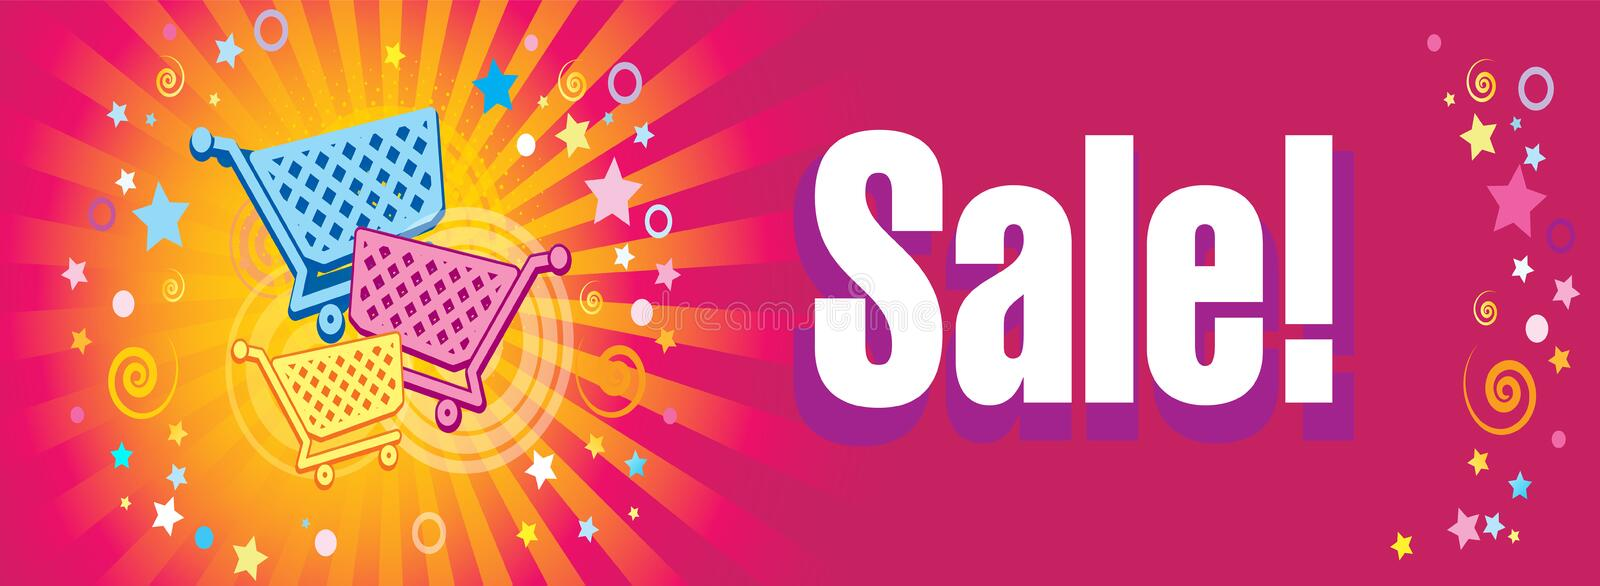 Sale banner. Supermarket trolleys on the decorative background with rays, stars and confetti. vector illustration